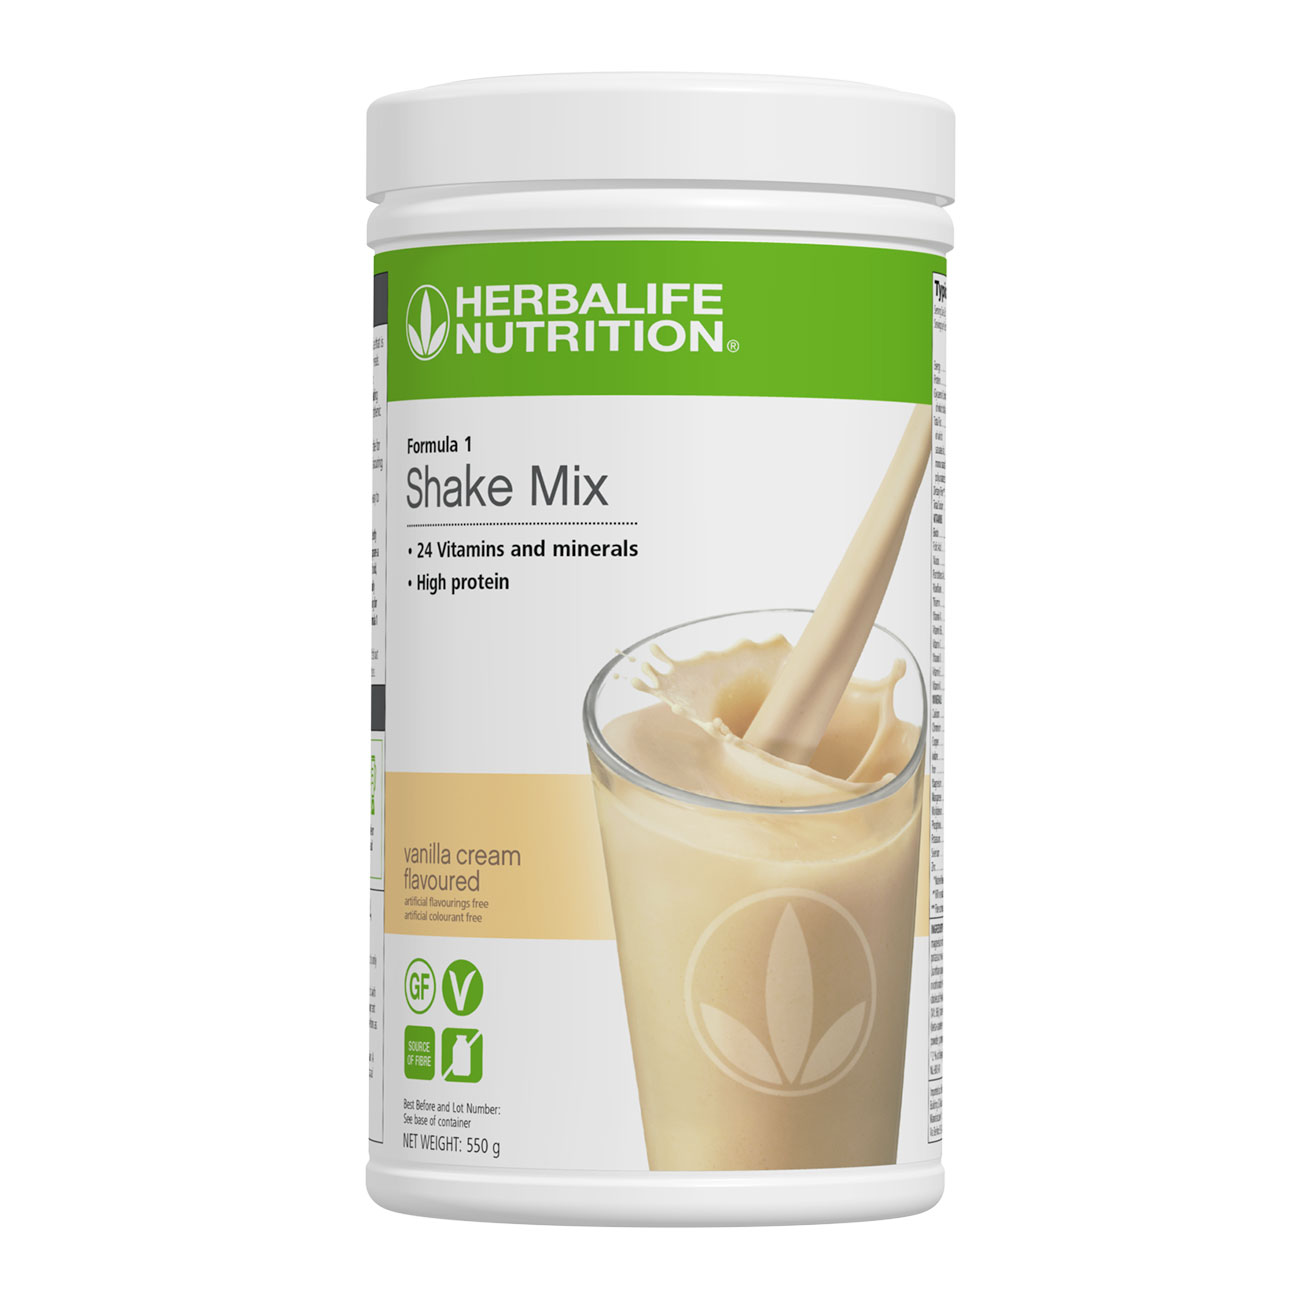 Formula 1 Shake Mix Vanilla Cream Flavoured 550 g product shot